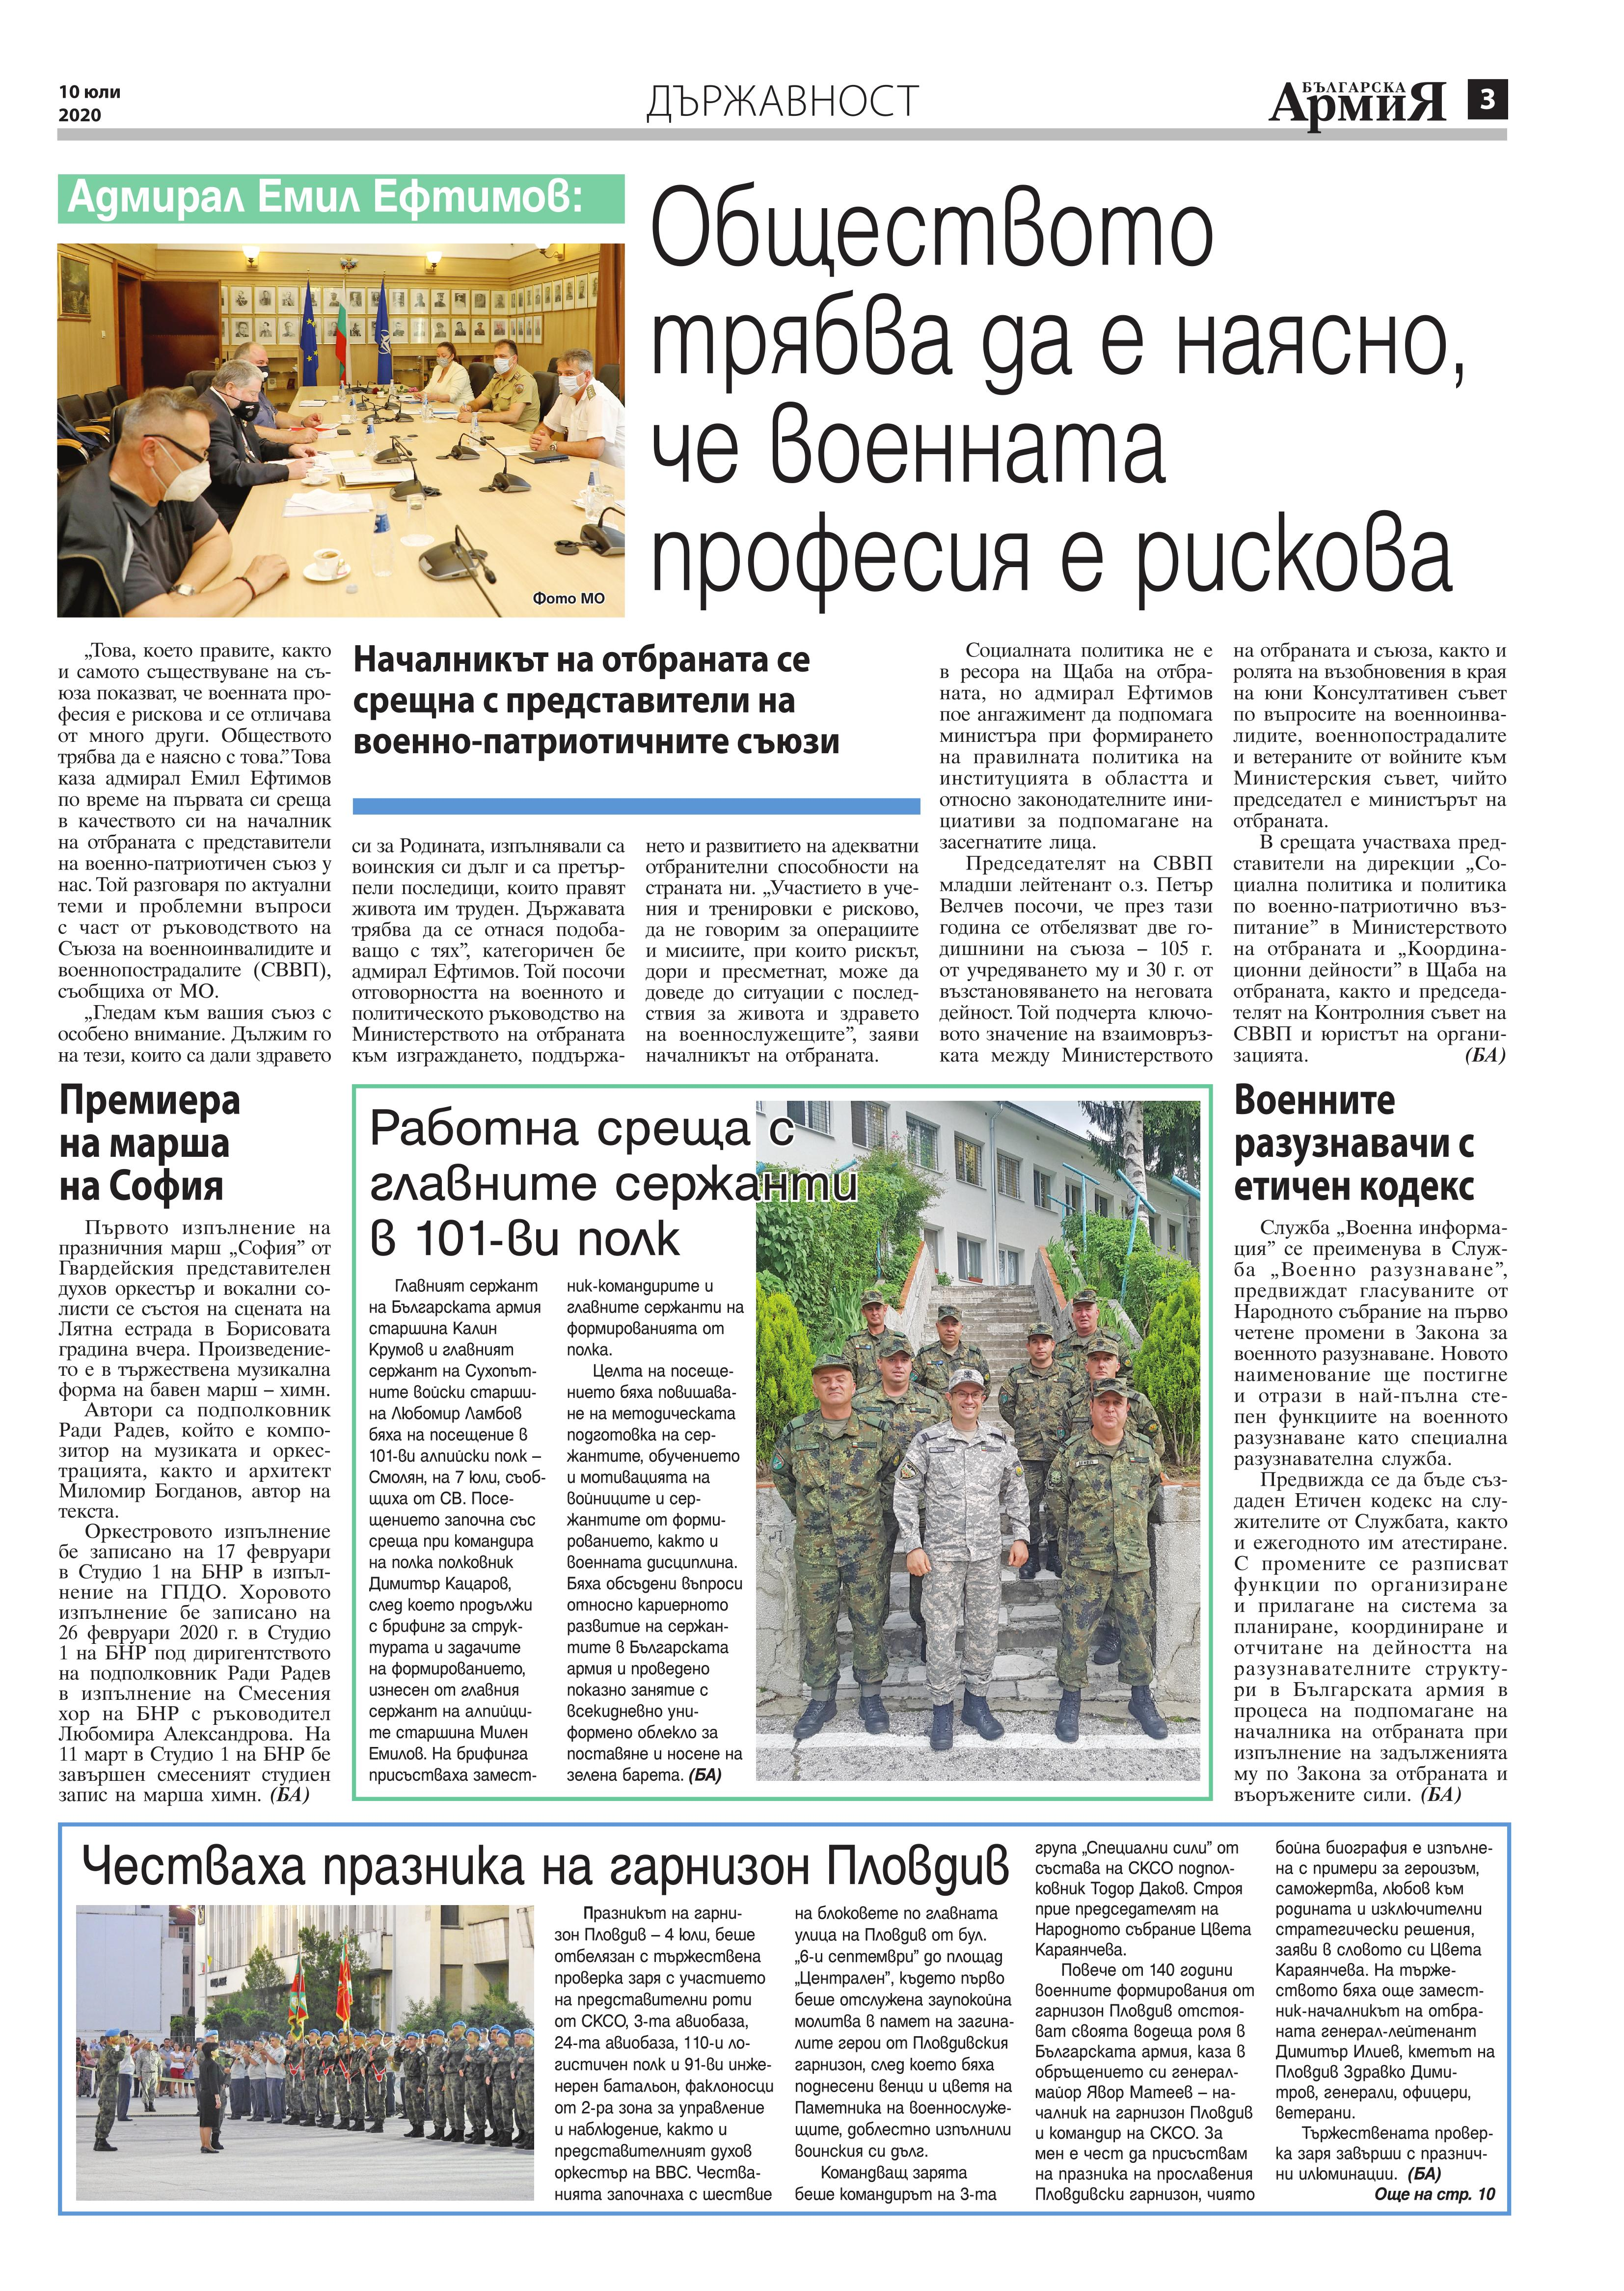 https://armymedia.bg/wp-content/uploads/2015/06/03.page1_-143.jpg